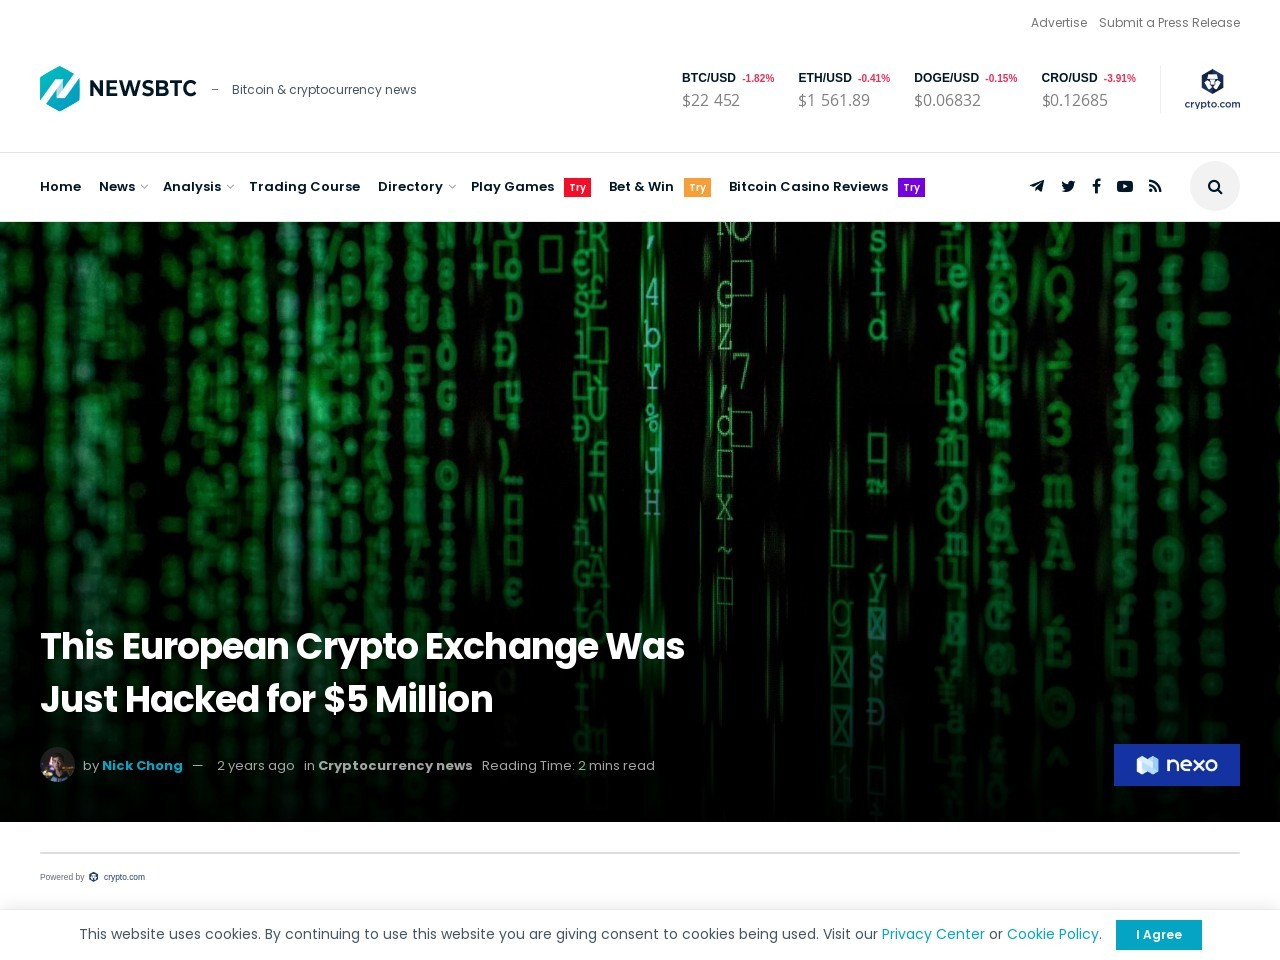 This European Crypto Exchange Was Just Hacked for $5 Million